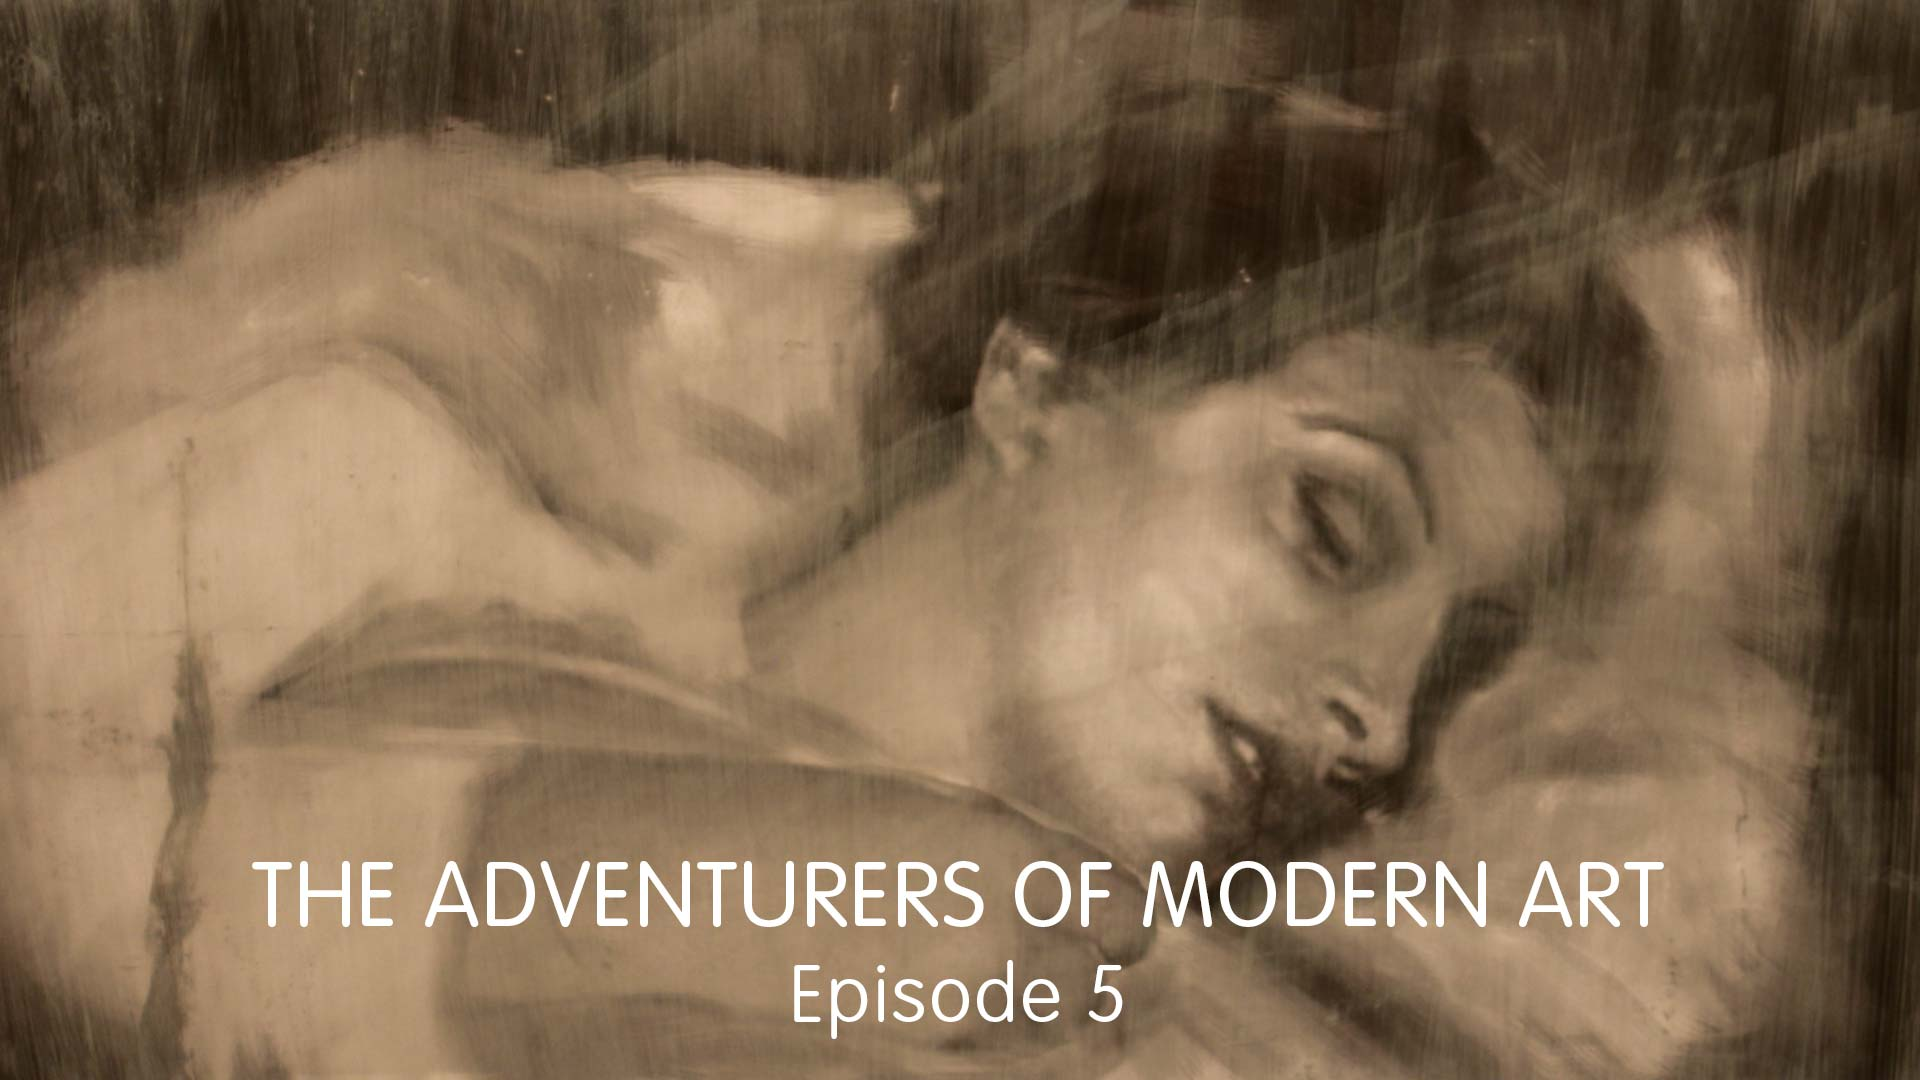 The Adventurers of Modern Art - Ep 5 - image